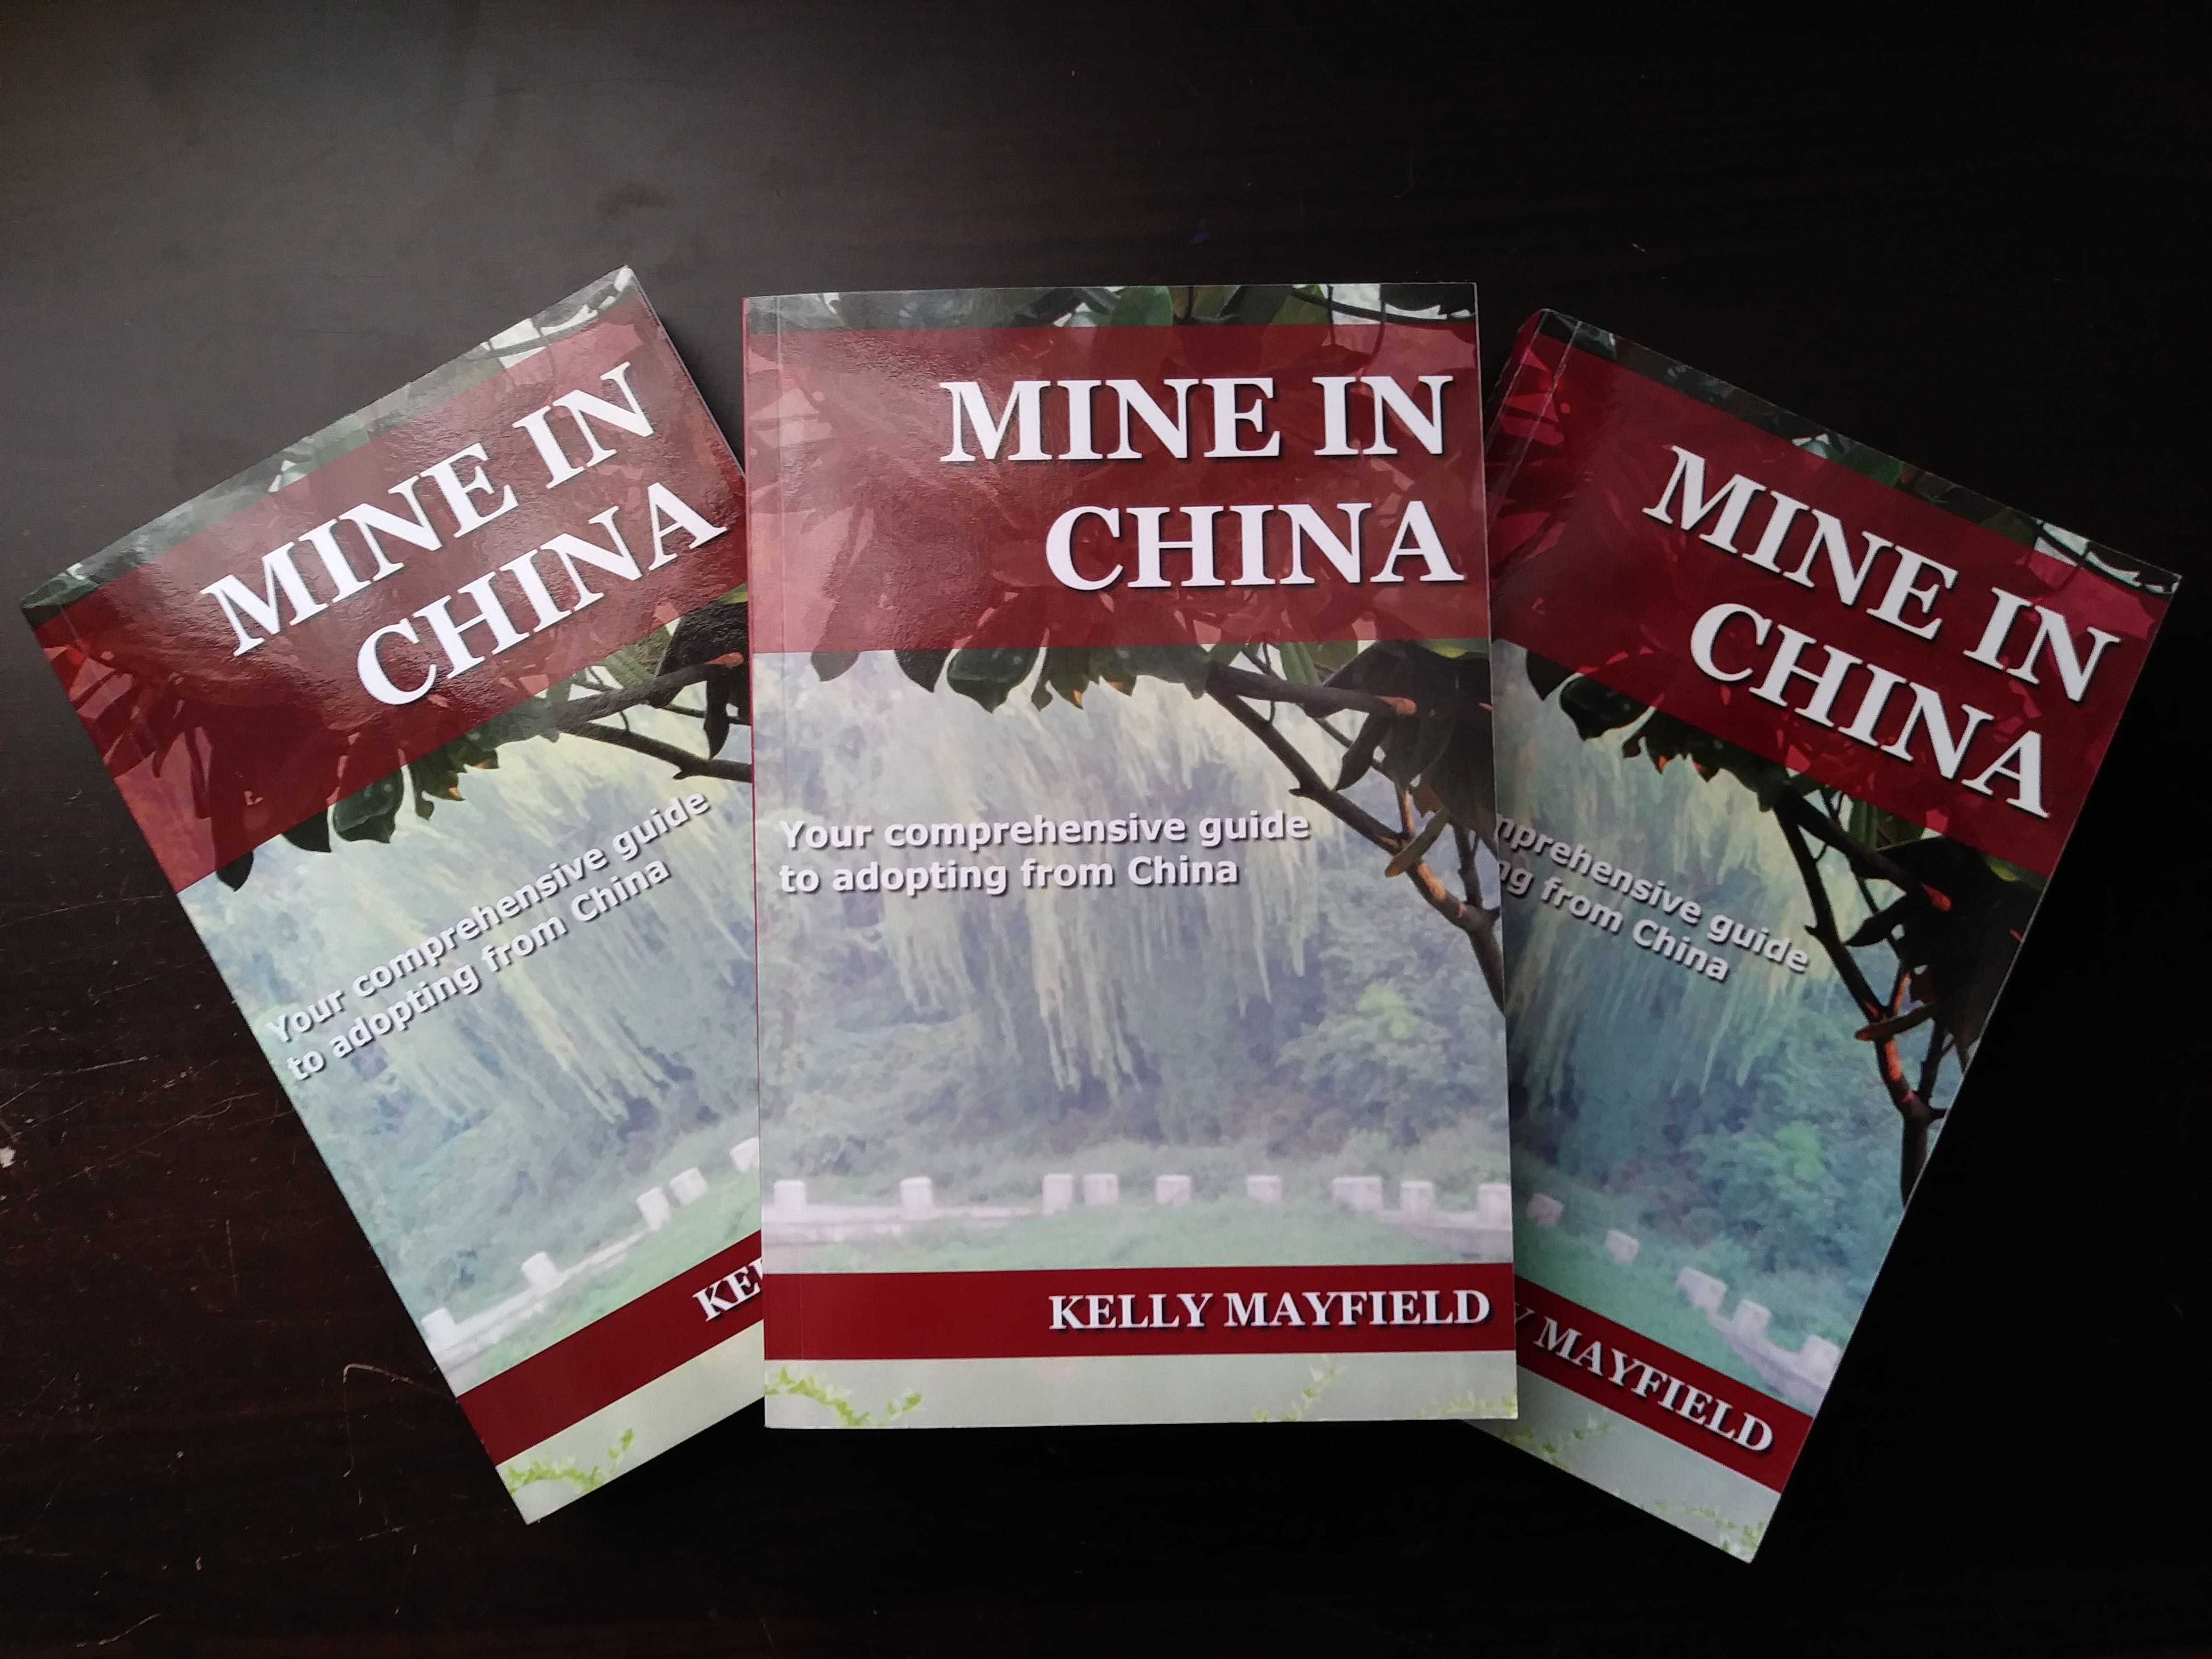 Mine in china book mine in china when i published mine in china in april 2016 i thought once id hit the publish button id move on to other things i thought id revise it again in a fandeluxe Images